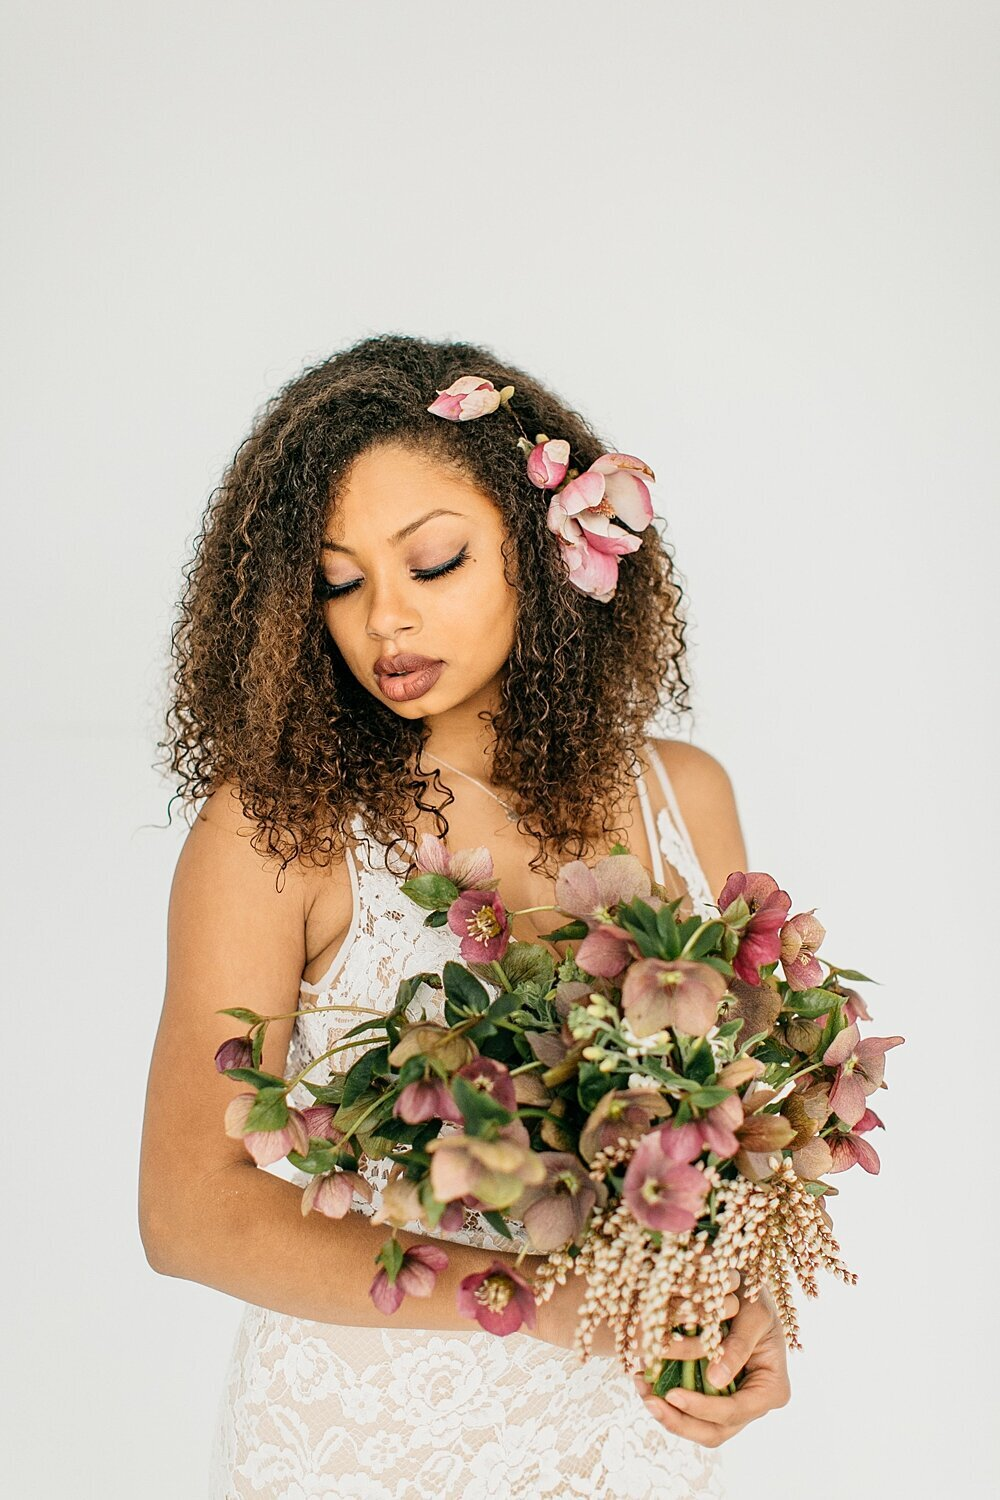 leigh-and-mitchell-spring-bridal-shoot-mauve-hellabore-bridal-bouquet